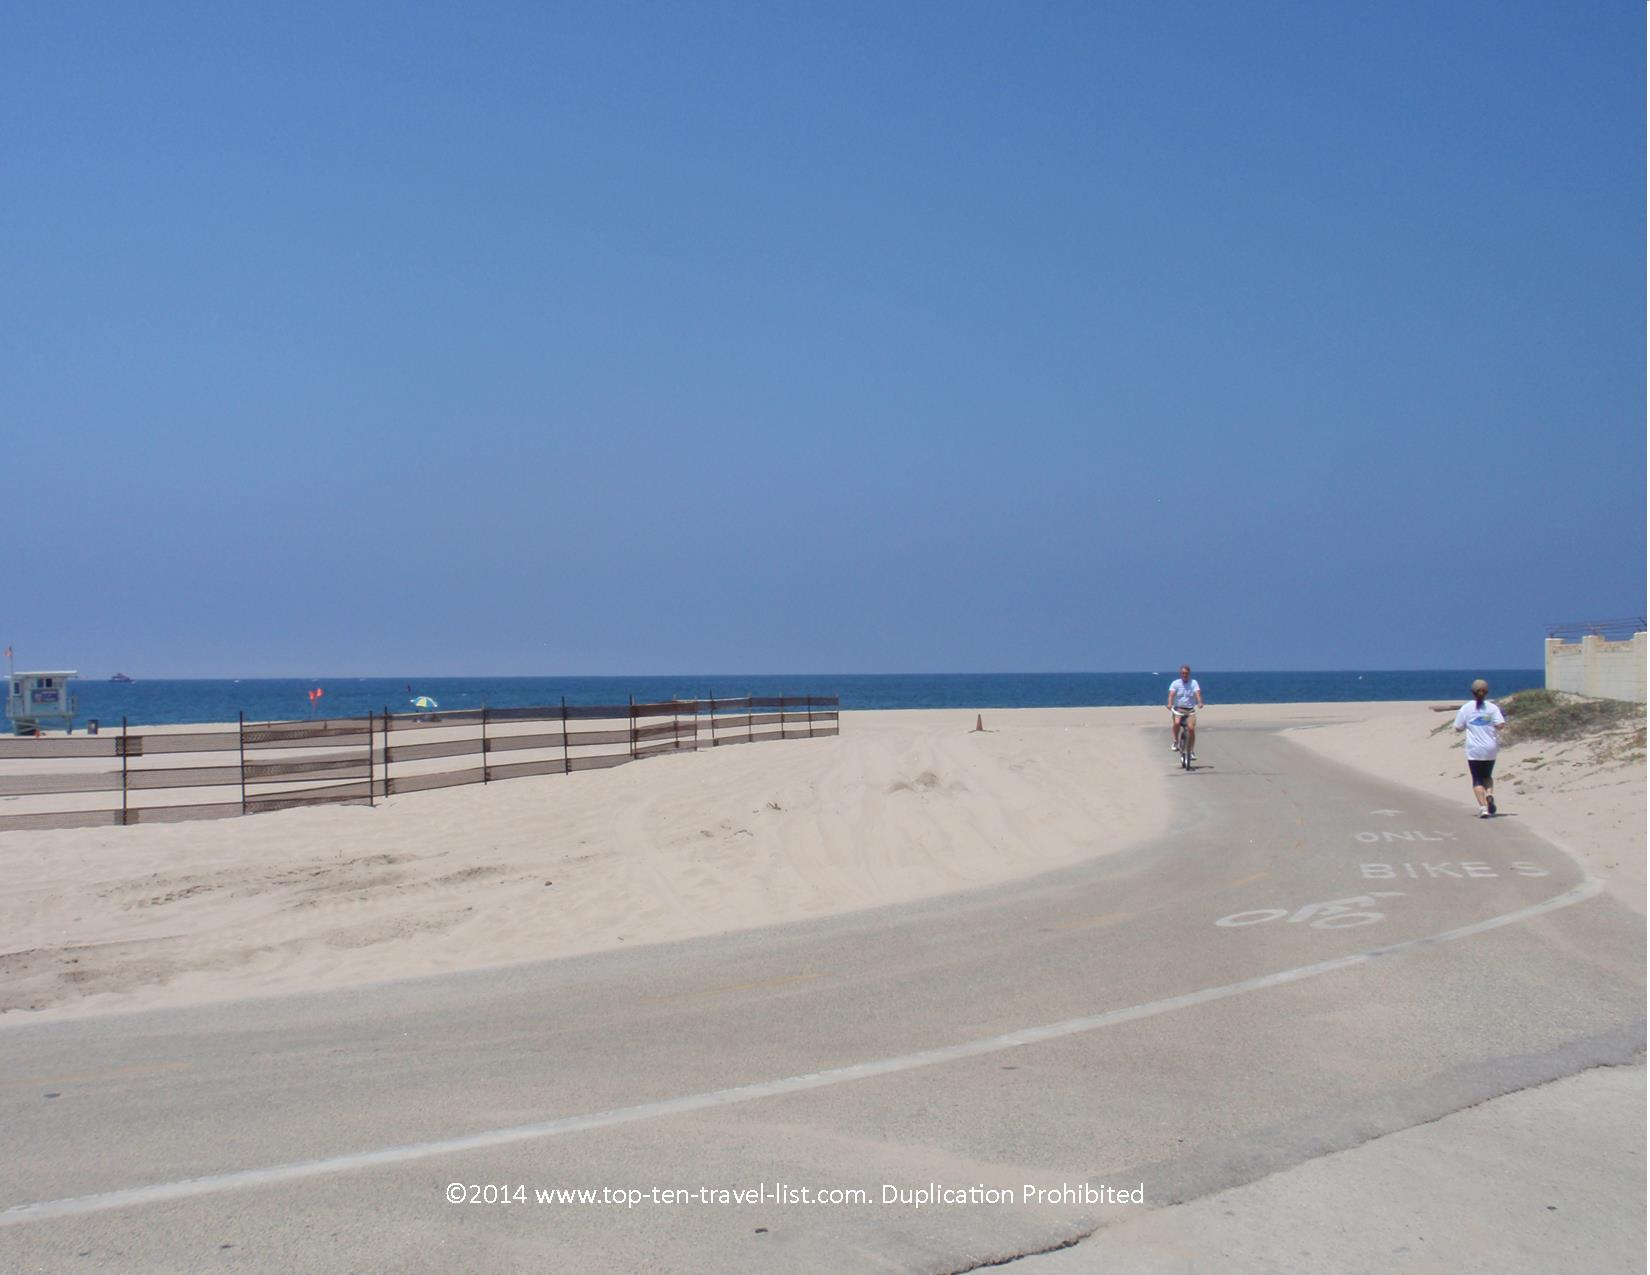 Coastal views along The Strand Bike Path in L.A.